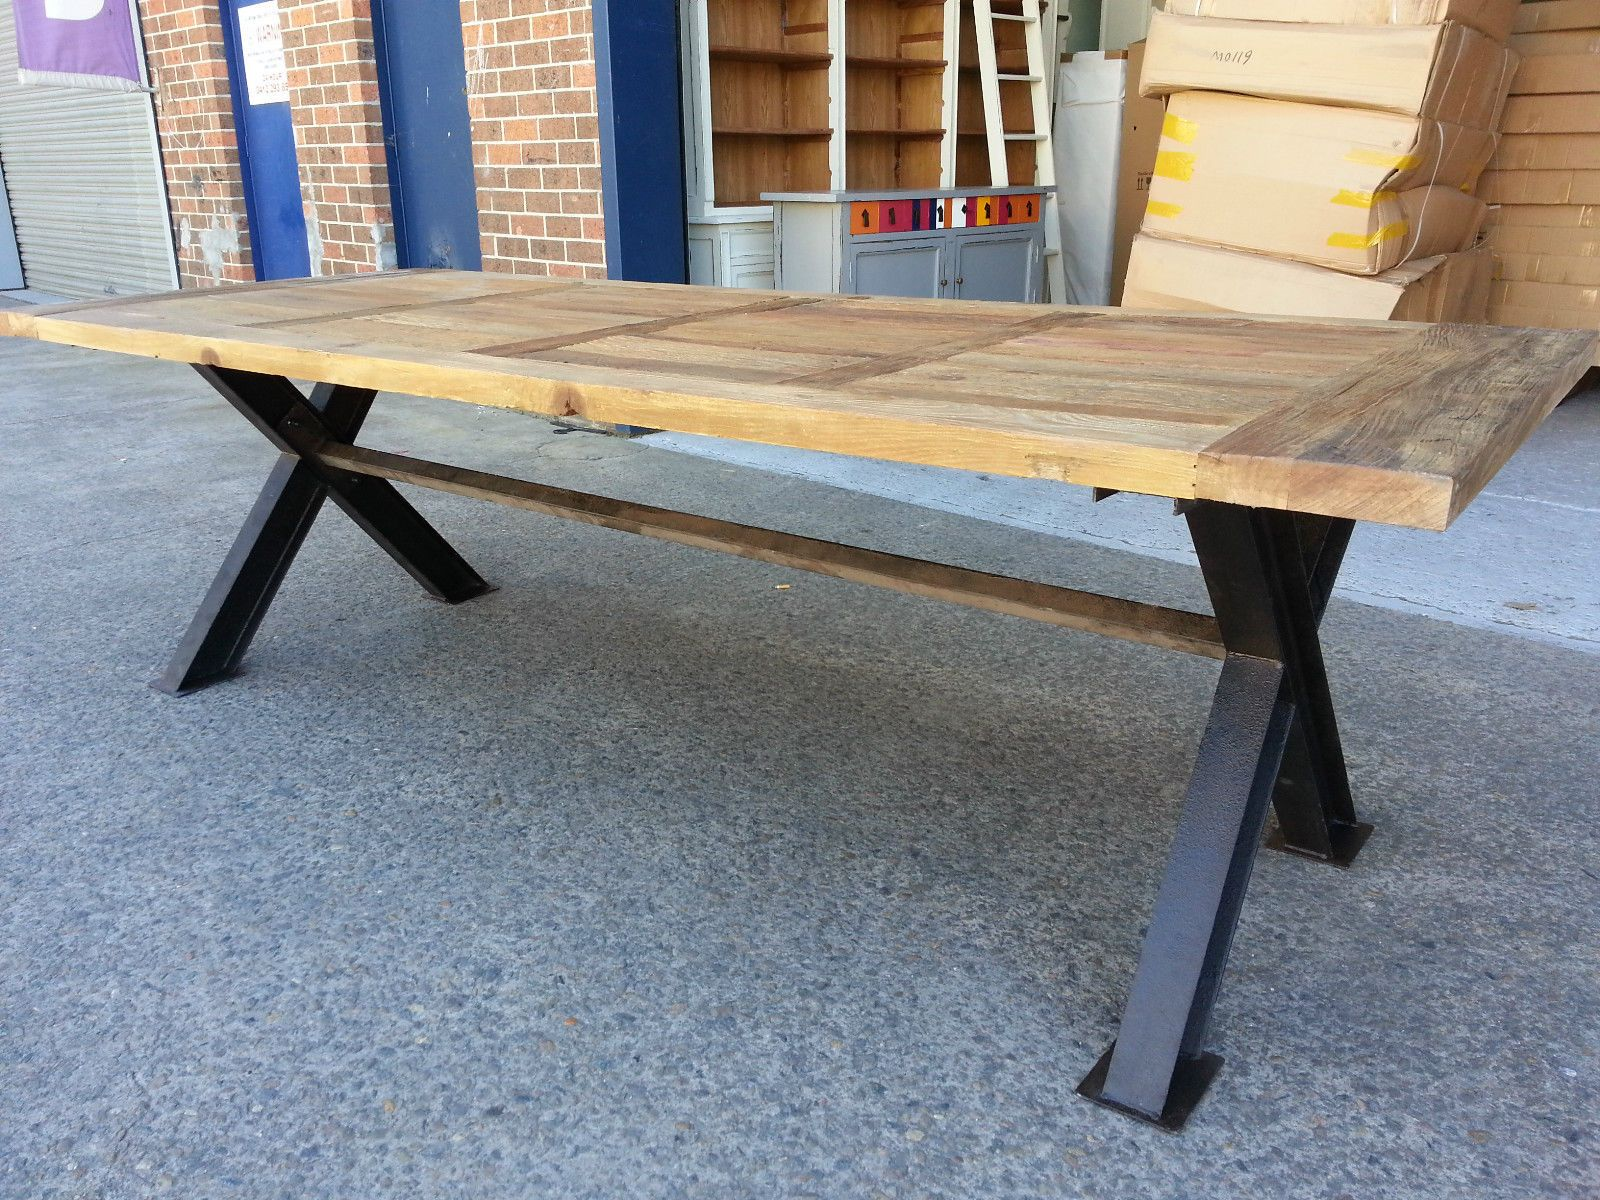 NEW FRENCH INDUSTRIAL RECYCLED VINTAGE RUSTIC TIMBER DINING TABLE   2.5M